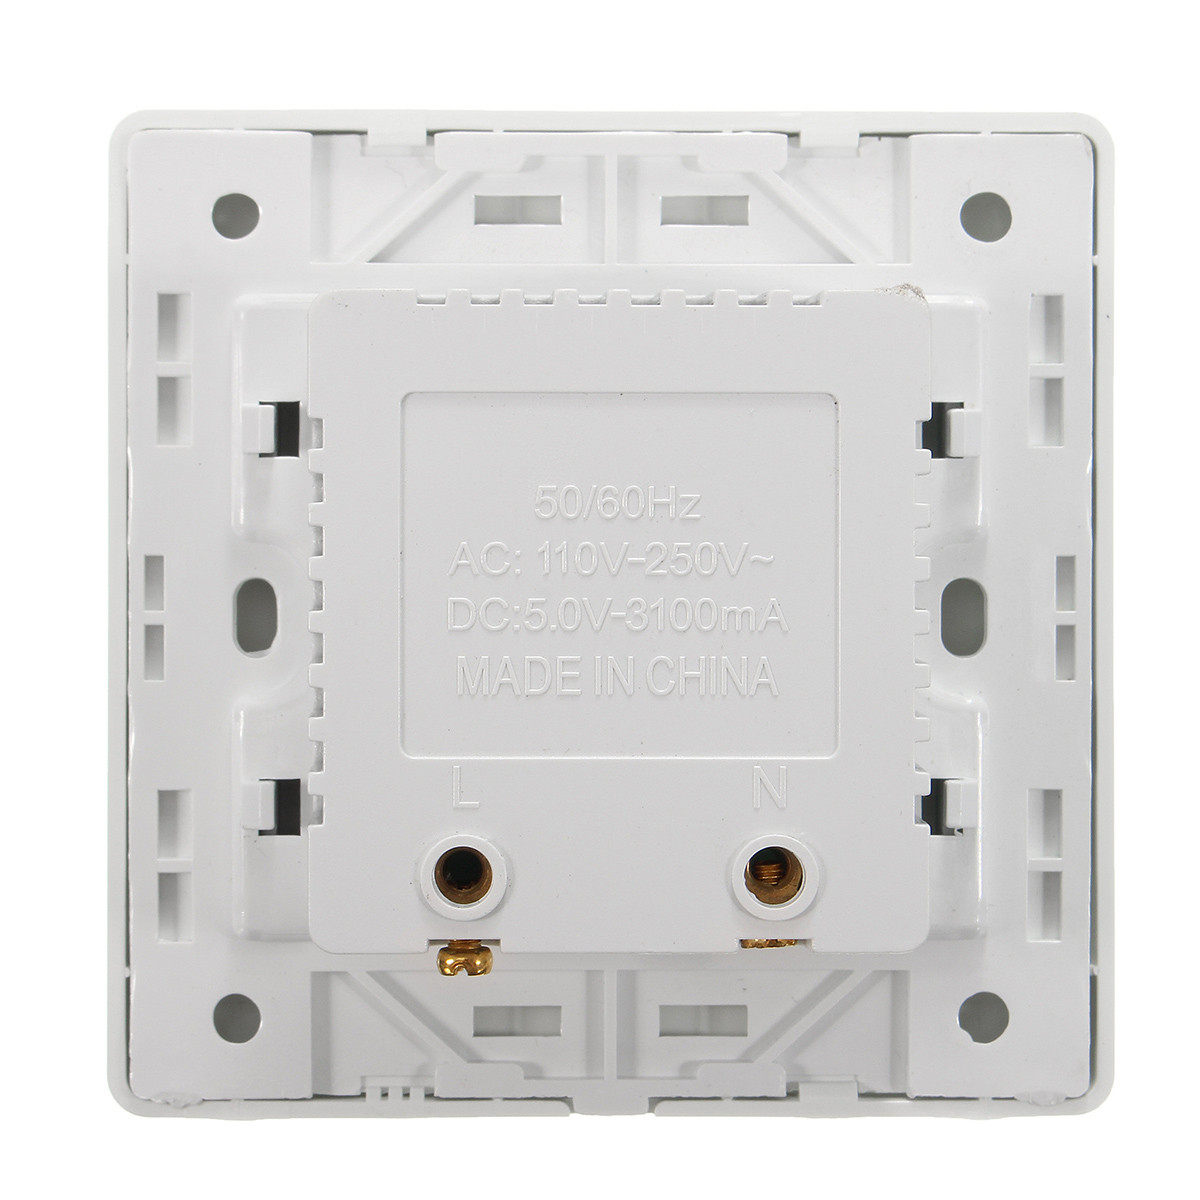 USB 3 Port Wall Socket Charger Power Receptacle Outlet Plate Panel ...